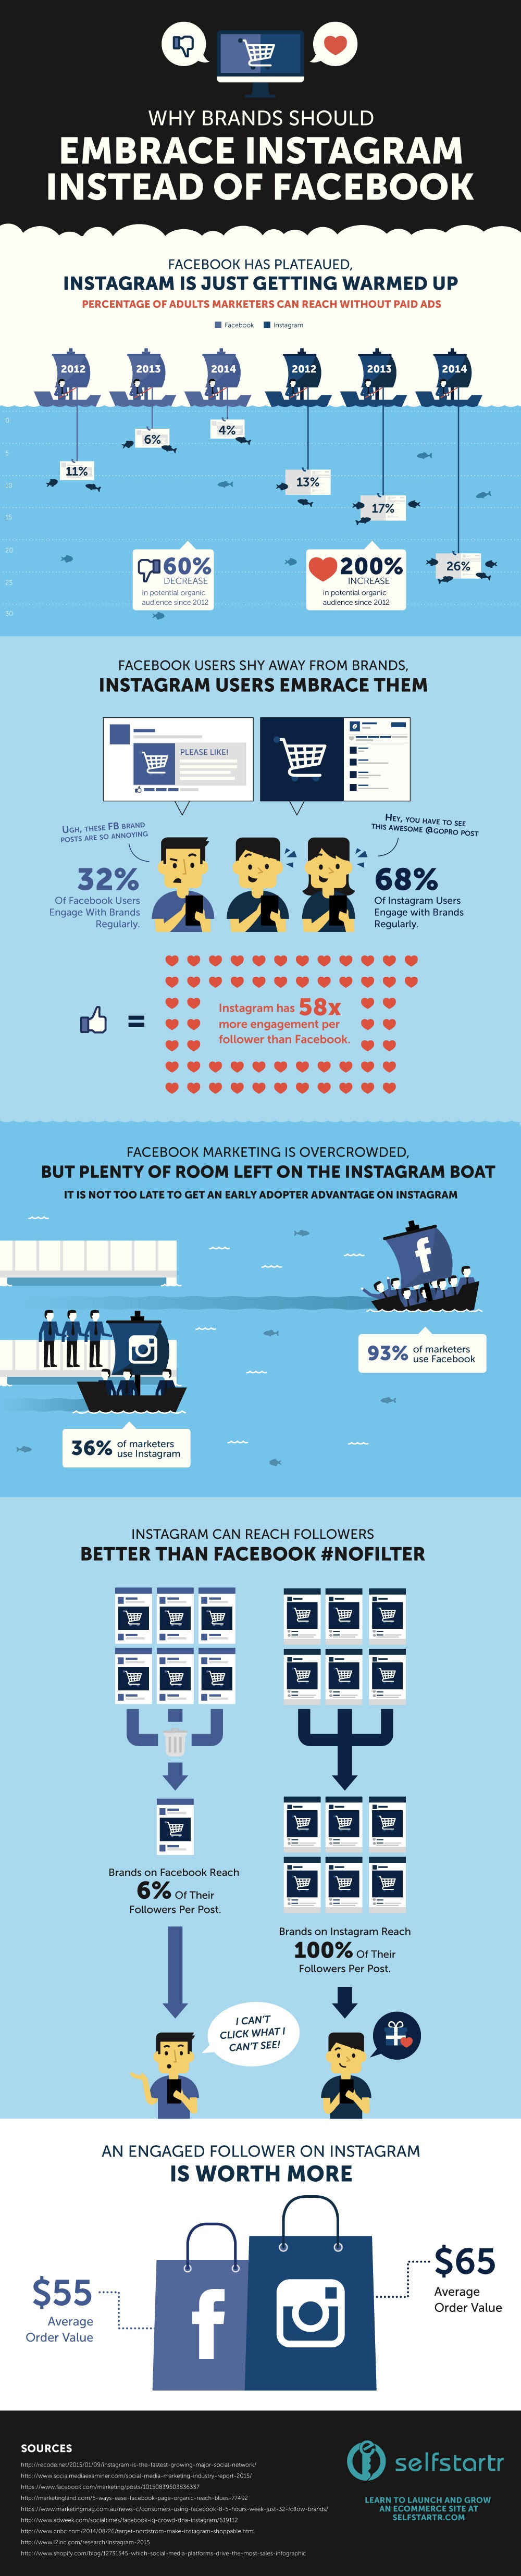 Why Instagram is a Ripe Opportunity for Brands - #Infographic